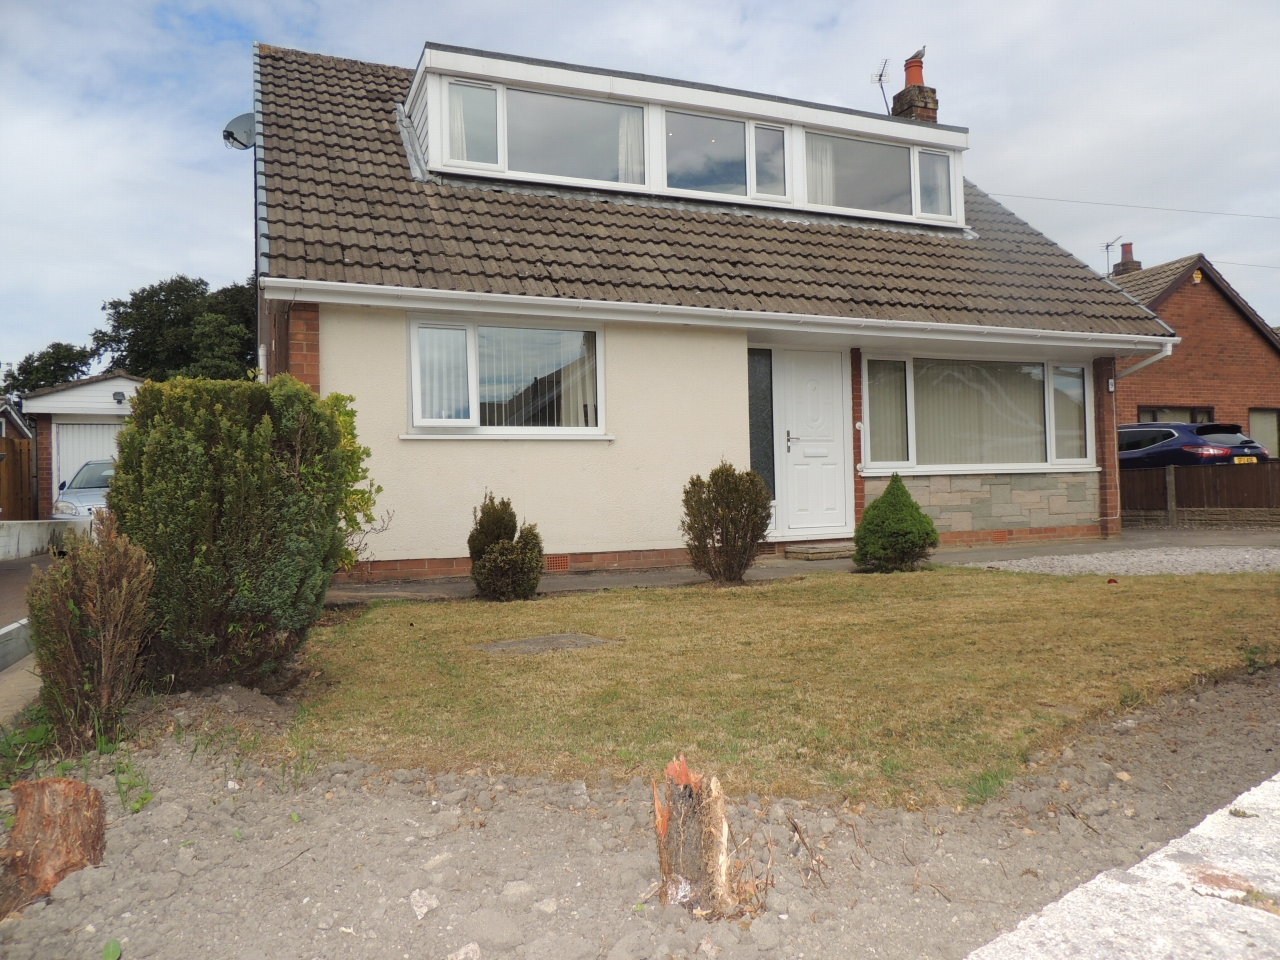 4 bedroom detached bungalow To Let in Leyland - Property photograph